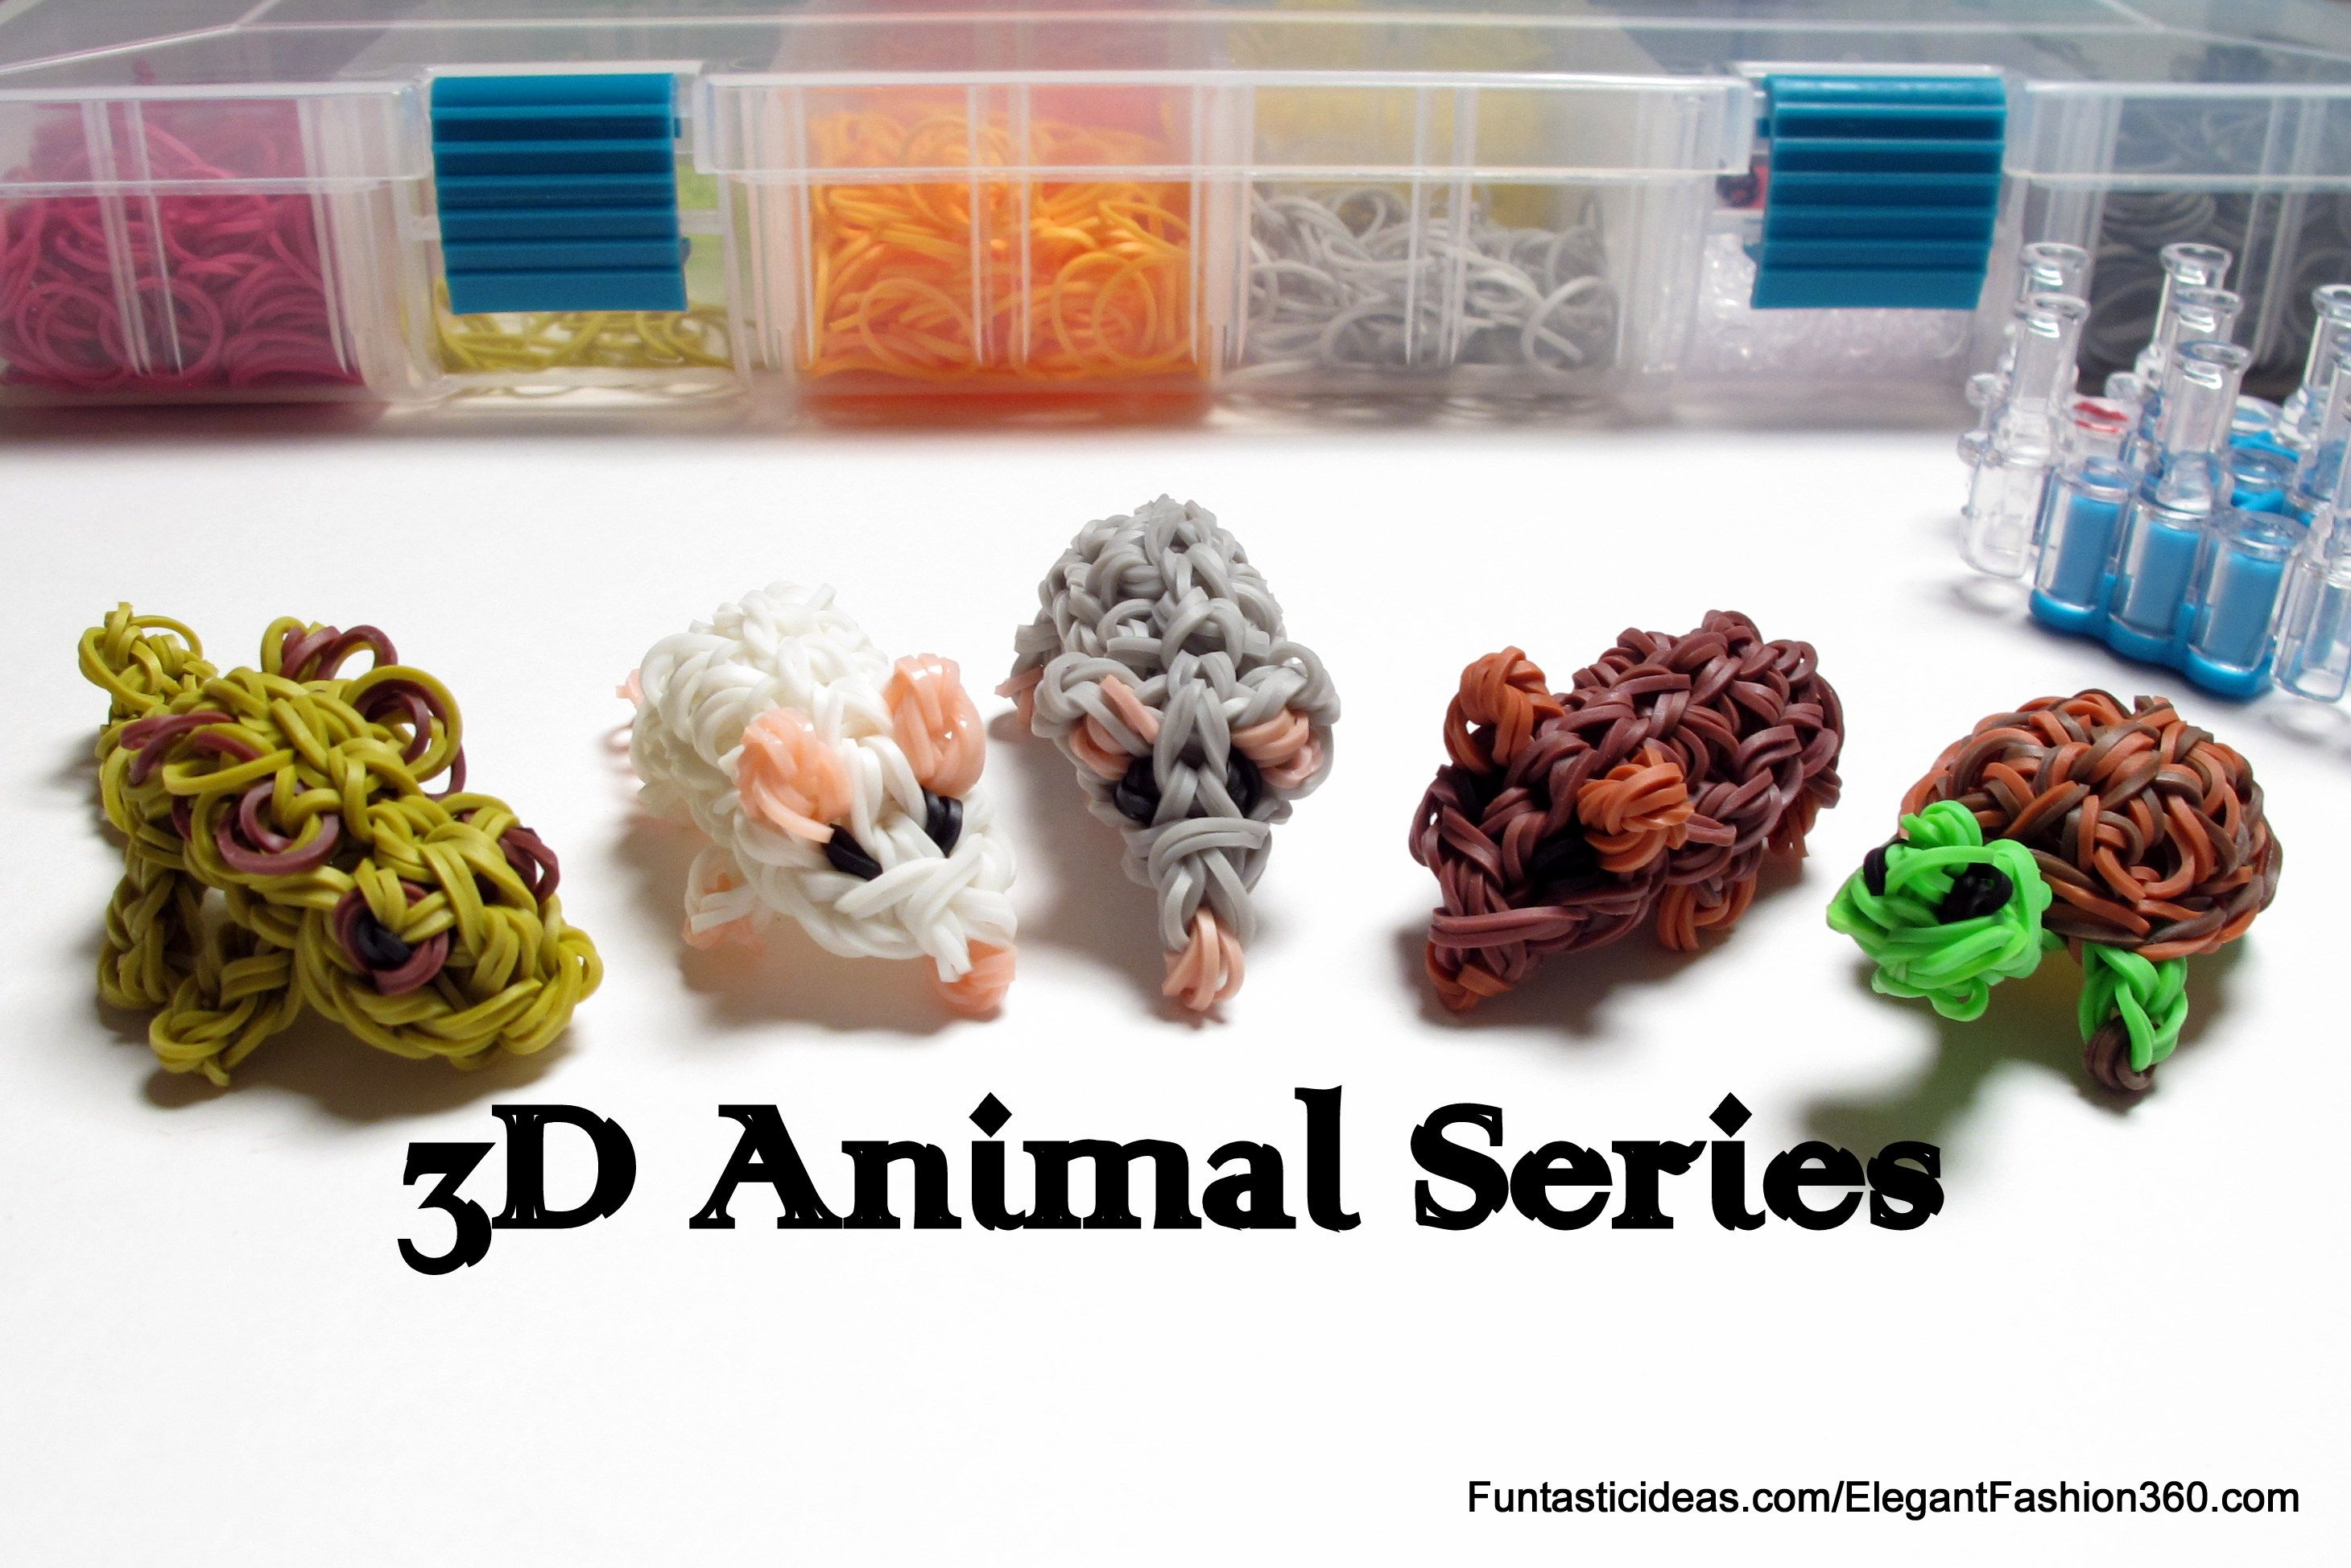 3D Animal Series by Elegant Fashion 360Rainbow Loom 3D mouse, turtles, and chameleons Figures/Charms